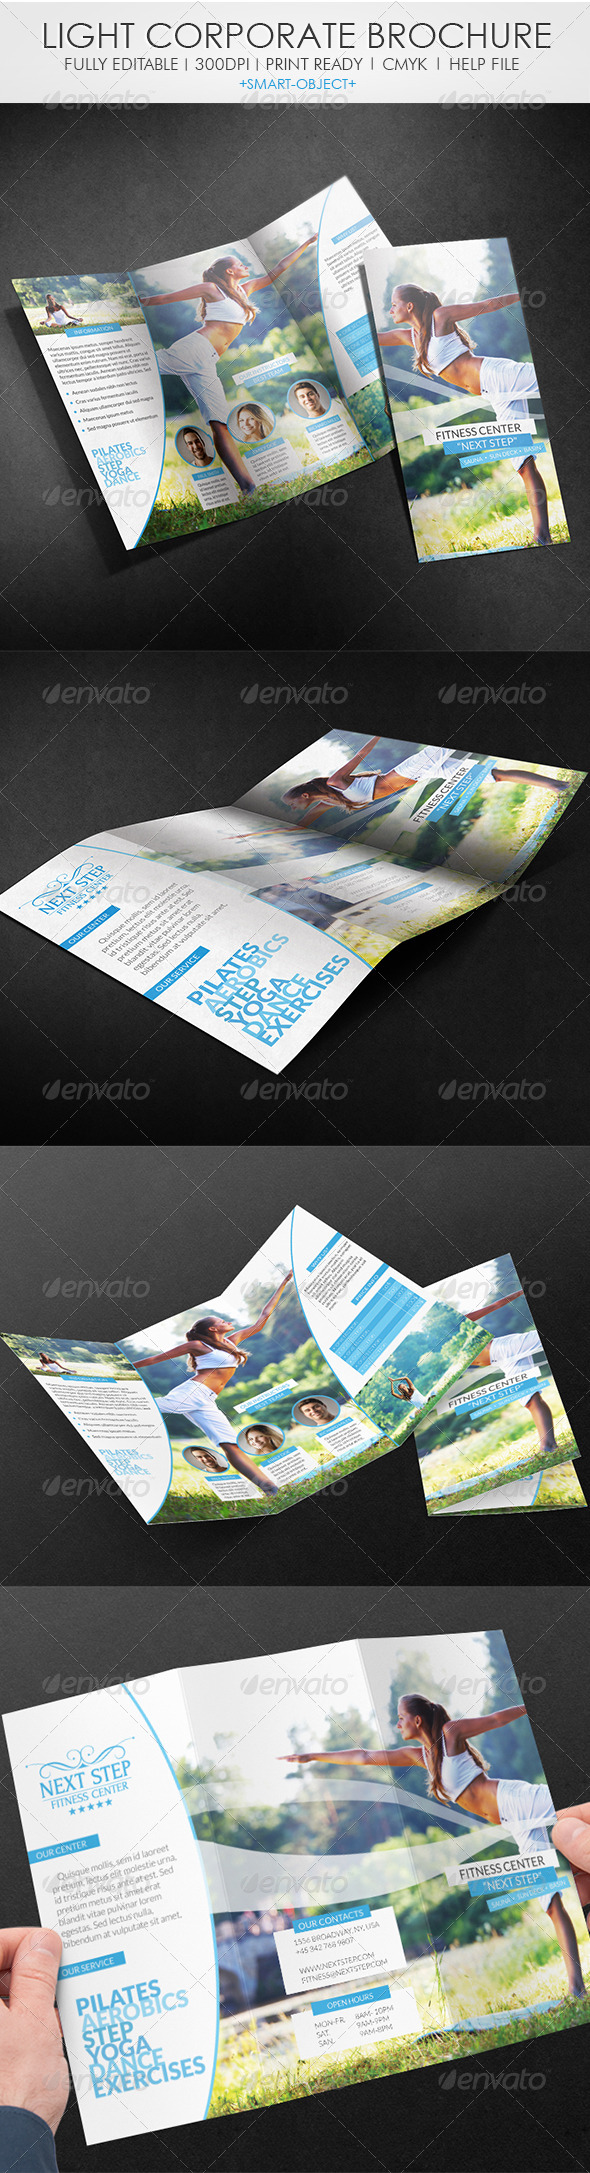 Light Corporate Tri-fold Brochure - Corporate Brochures